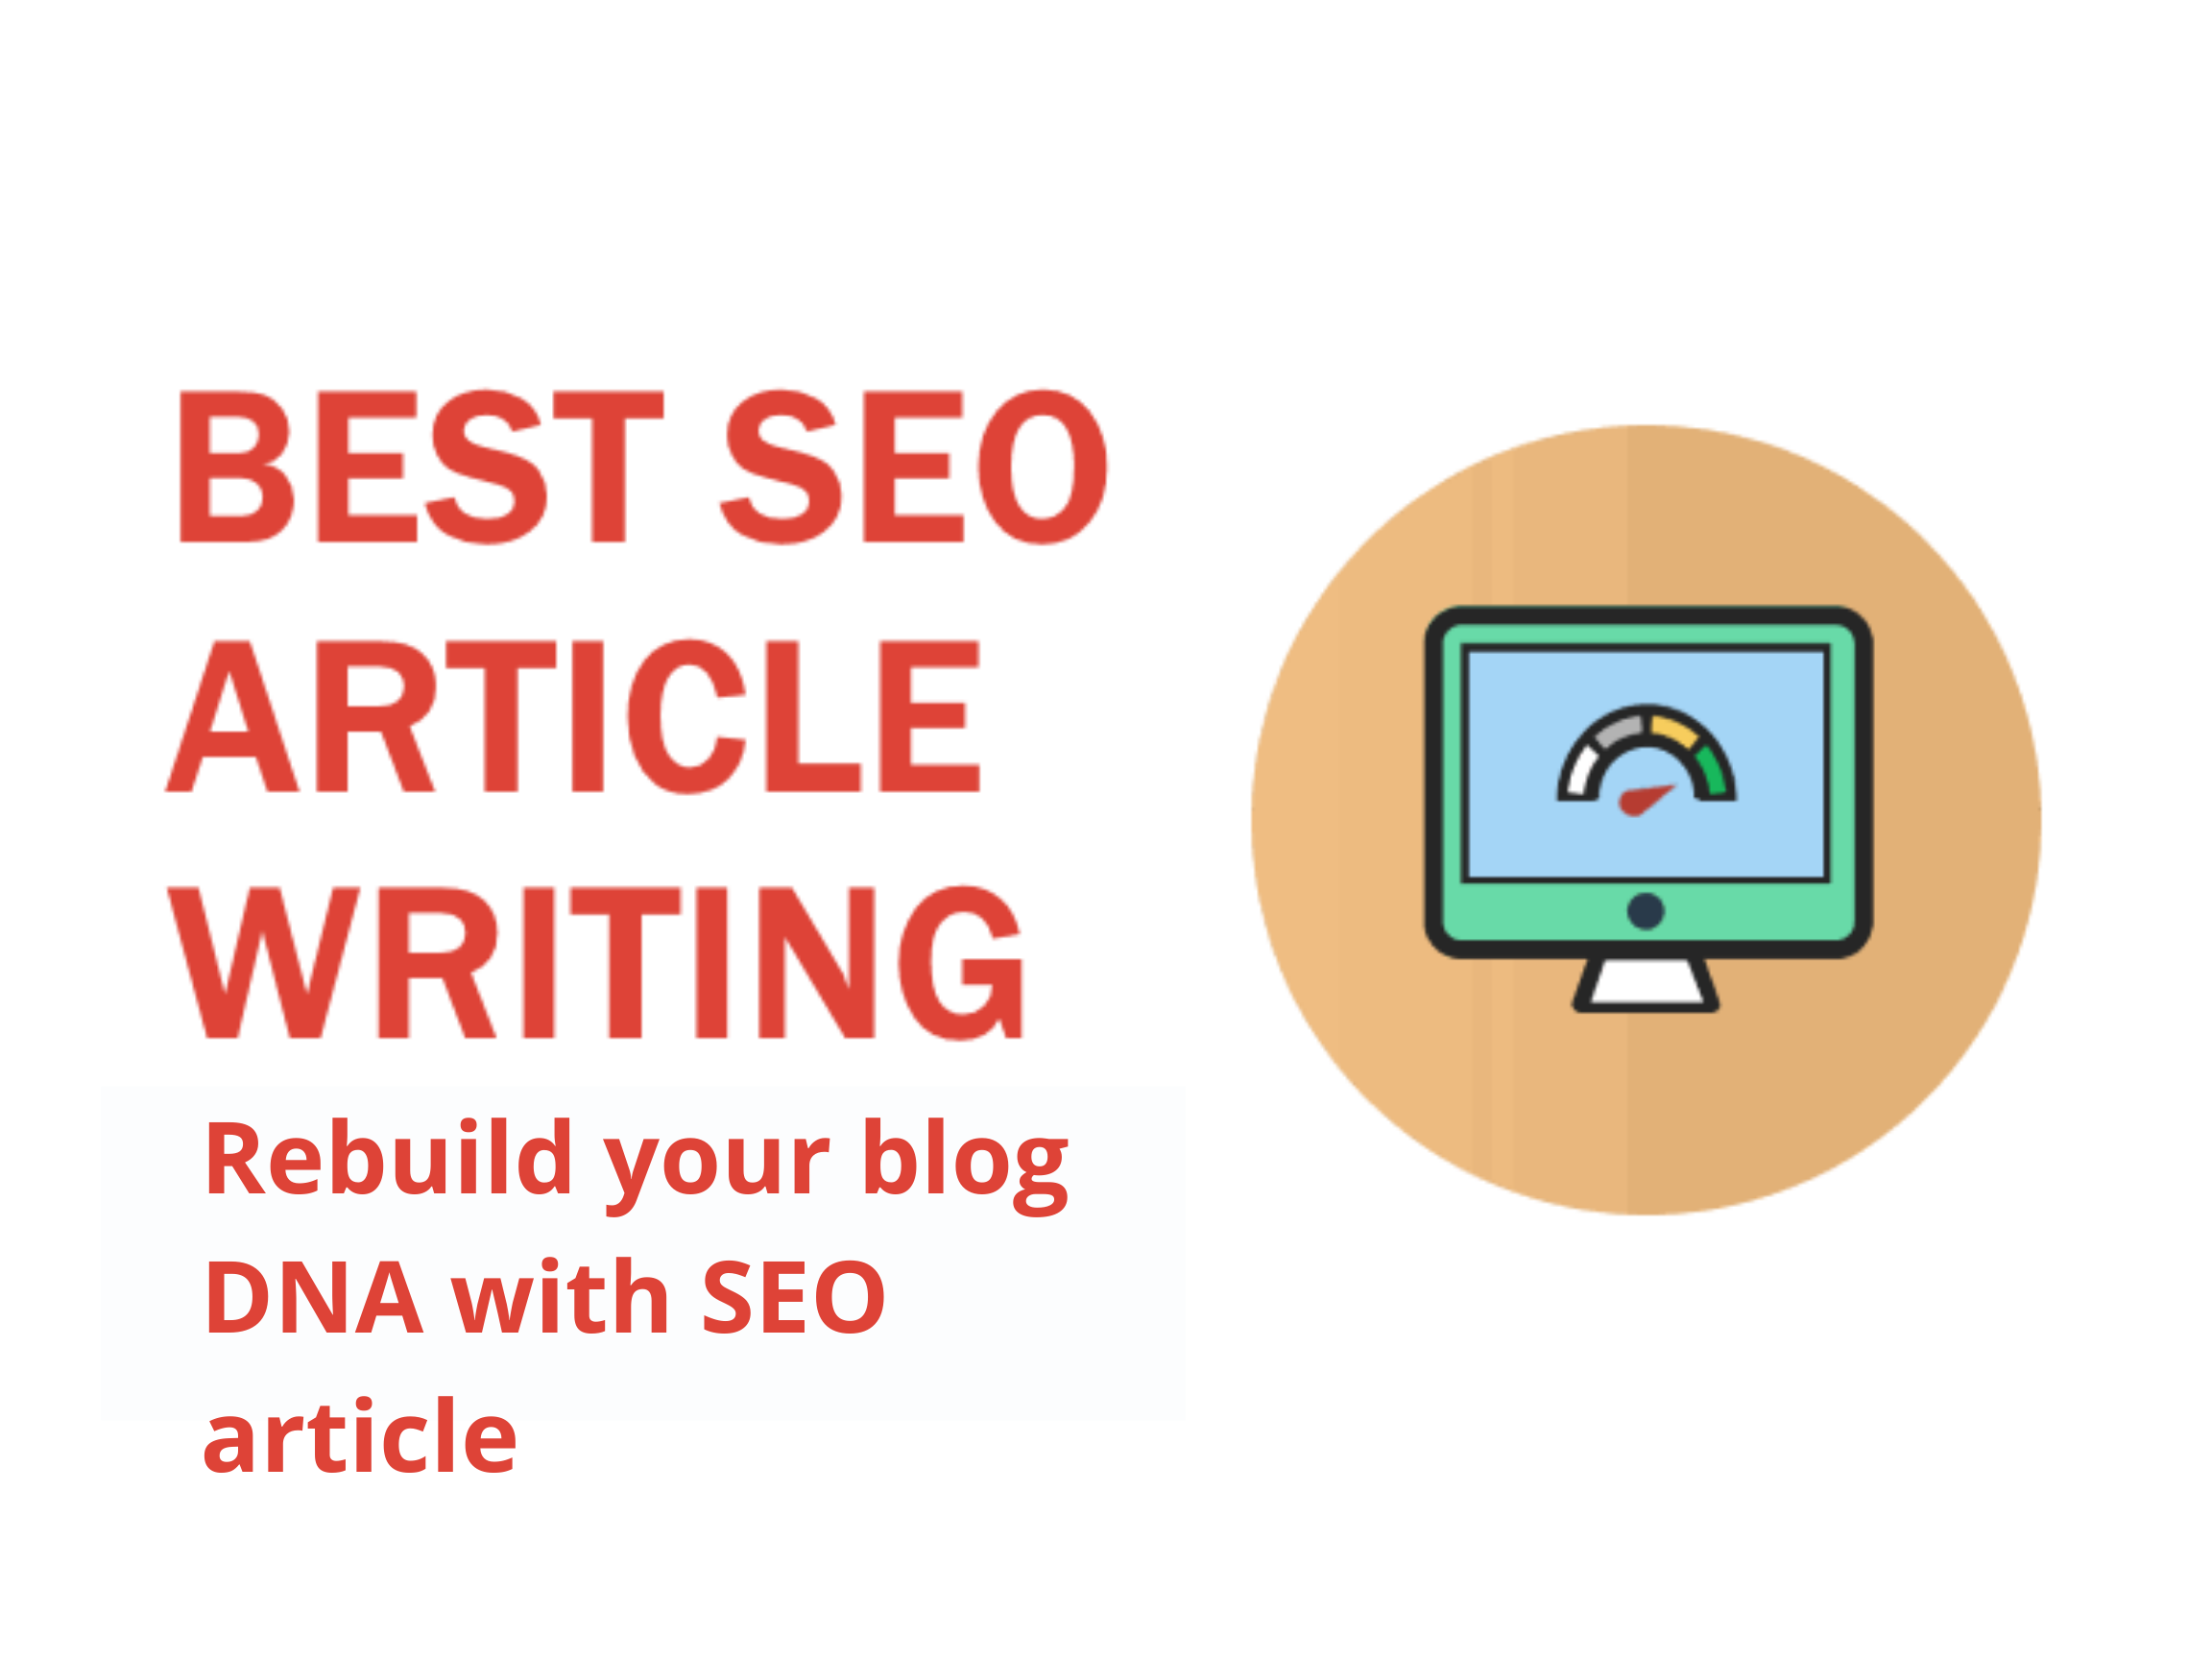 Write uniqe and SEO optimize article up to 600 - 1000 words for 20